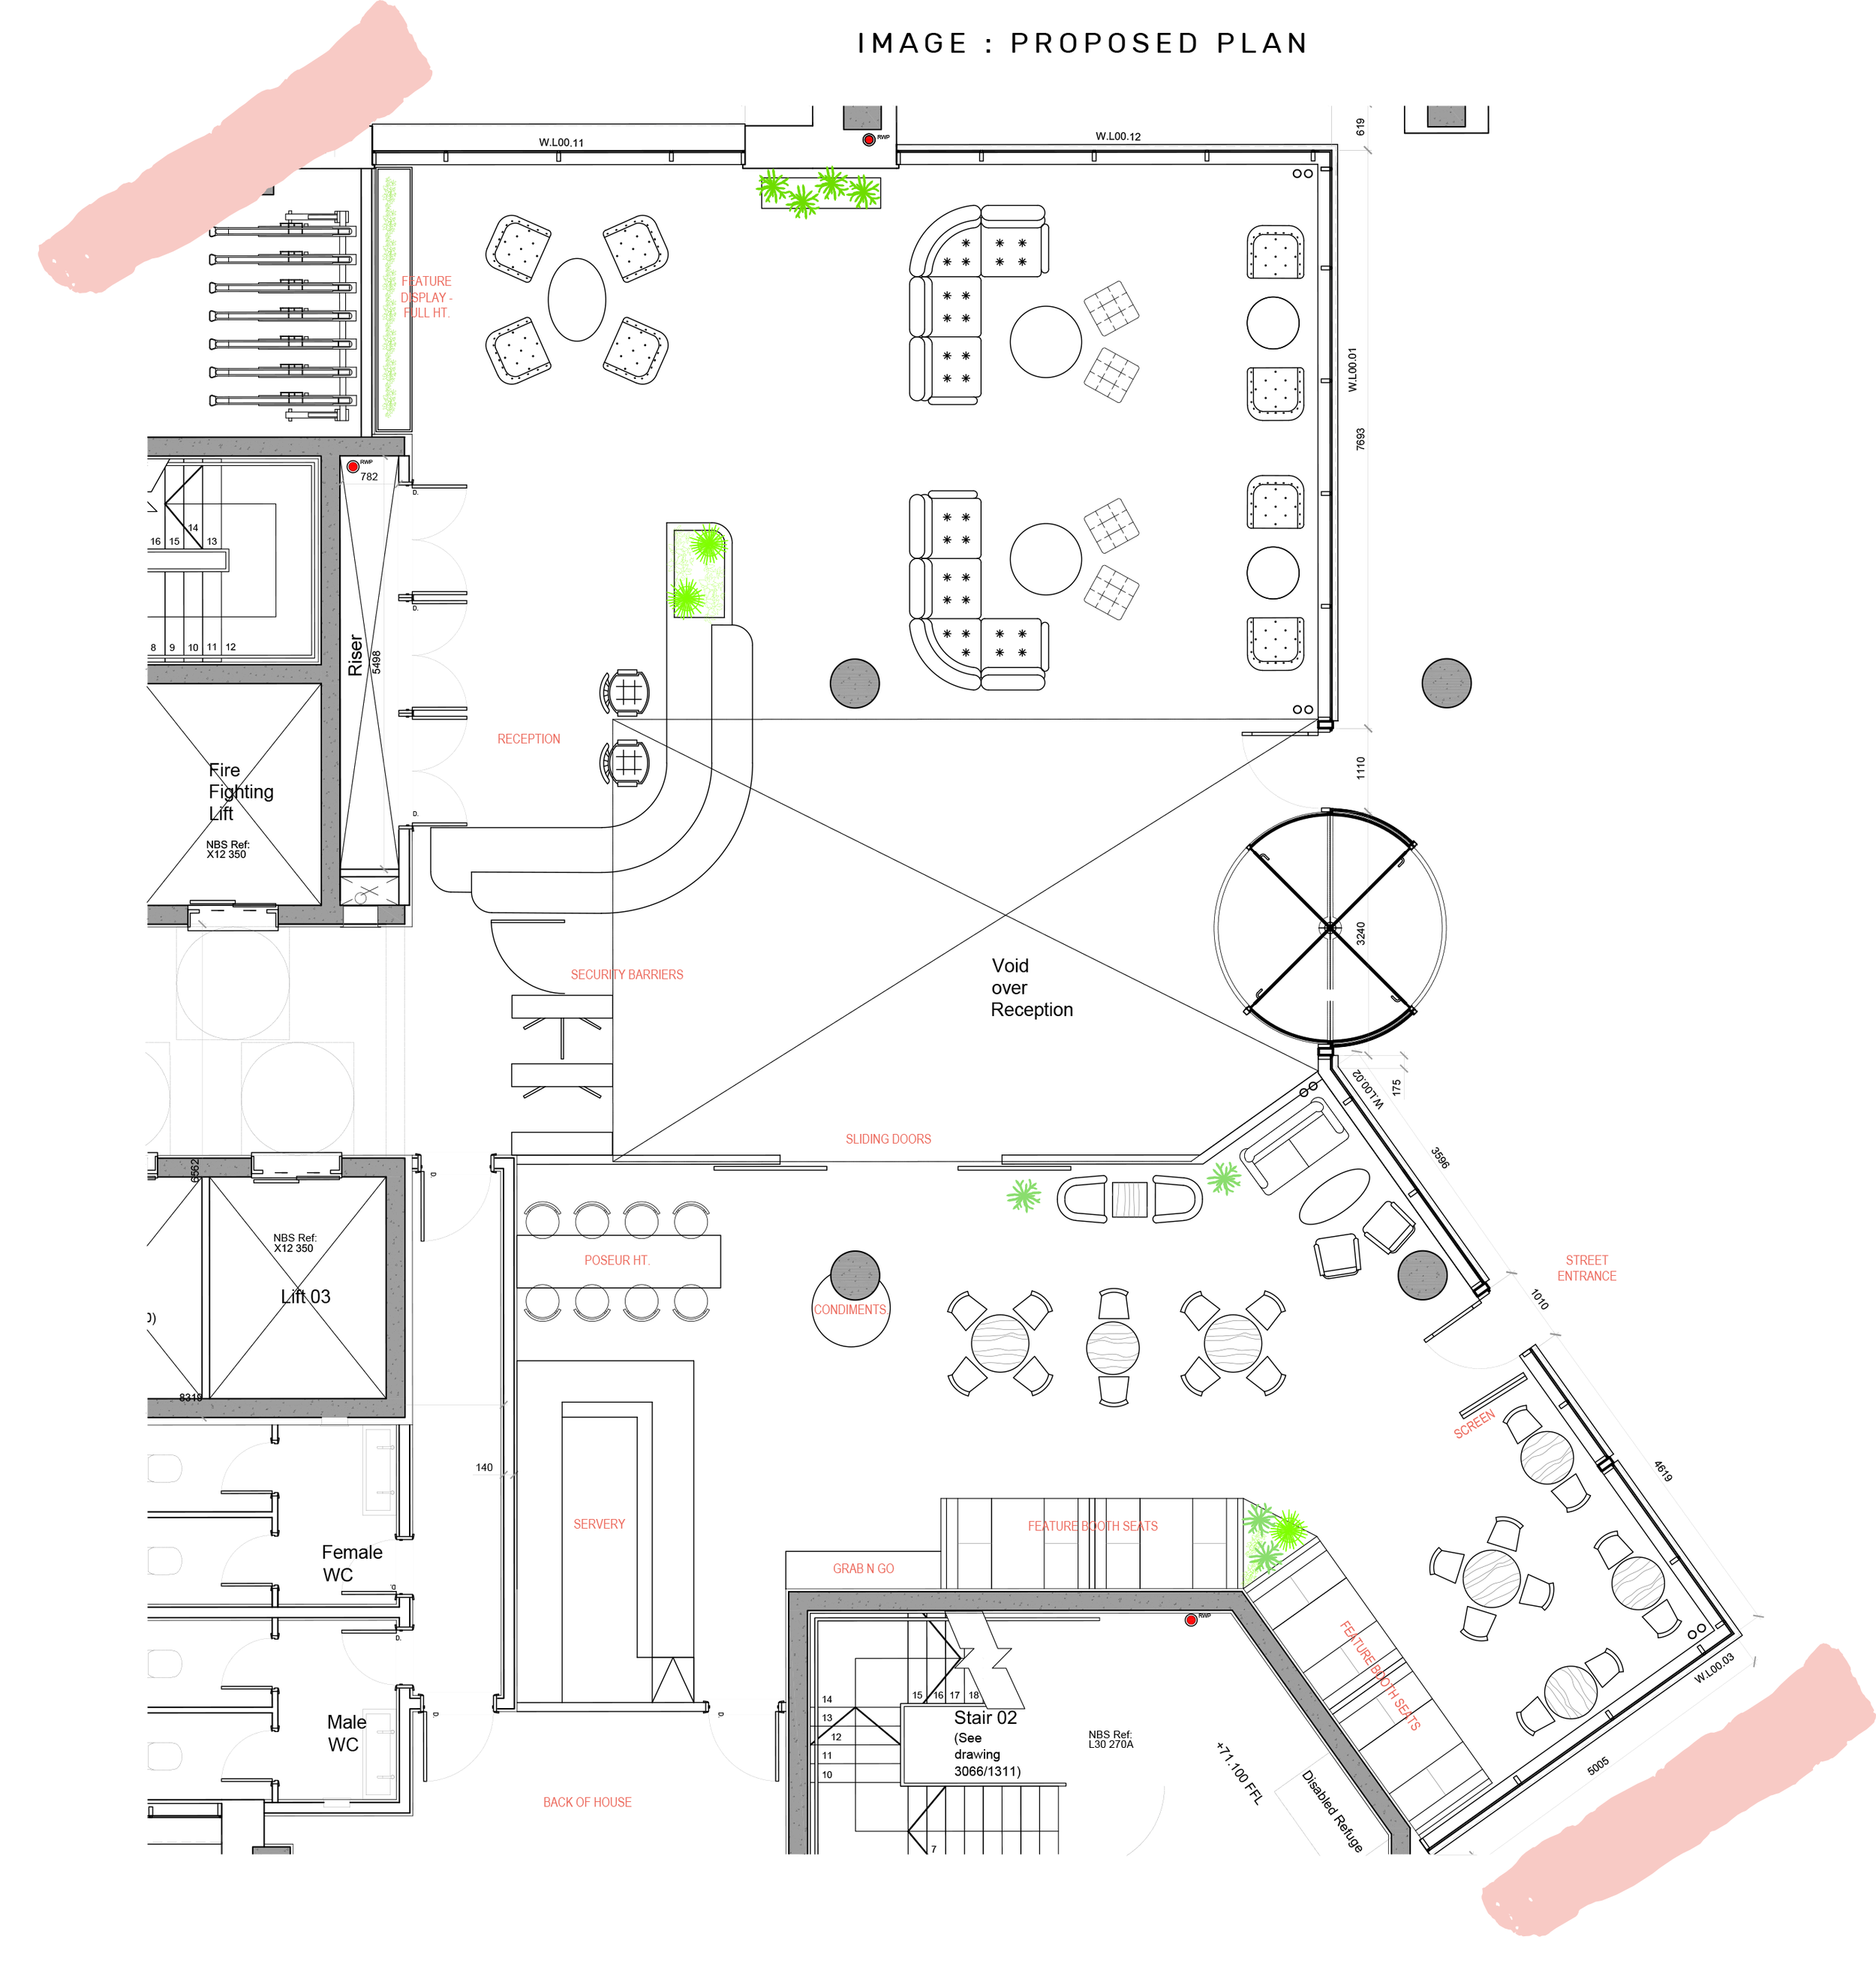 COFFEE SHOP - PROPOSED LAYOUT PLAN